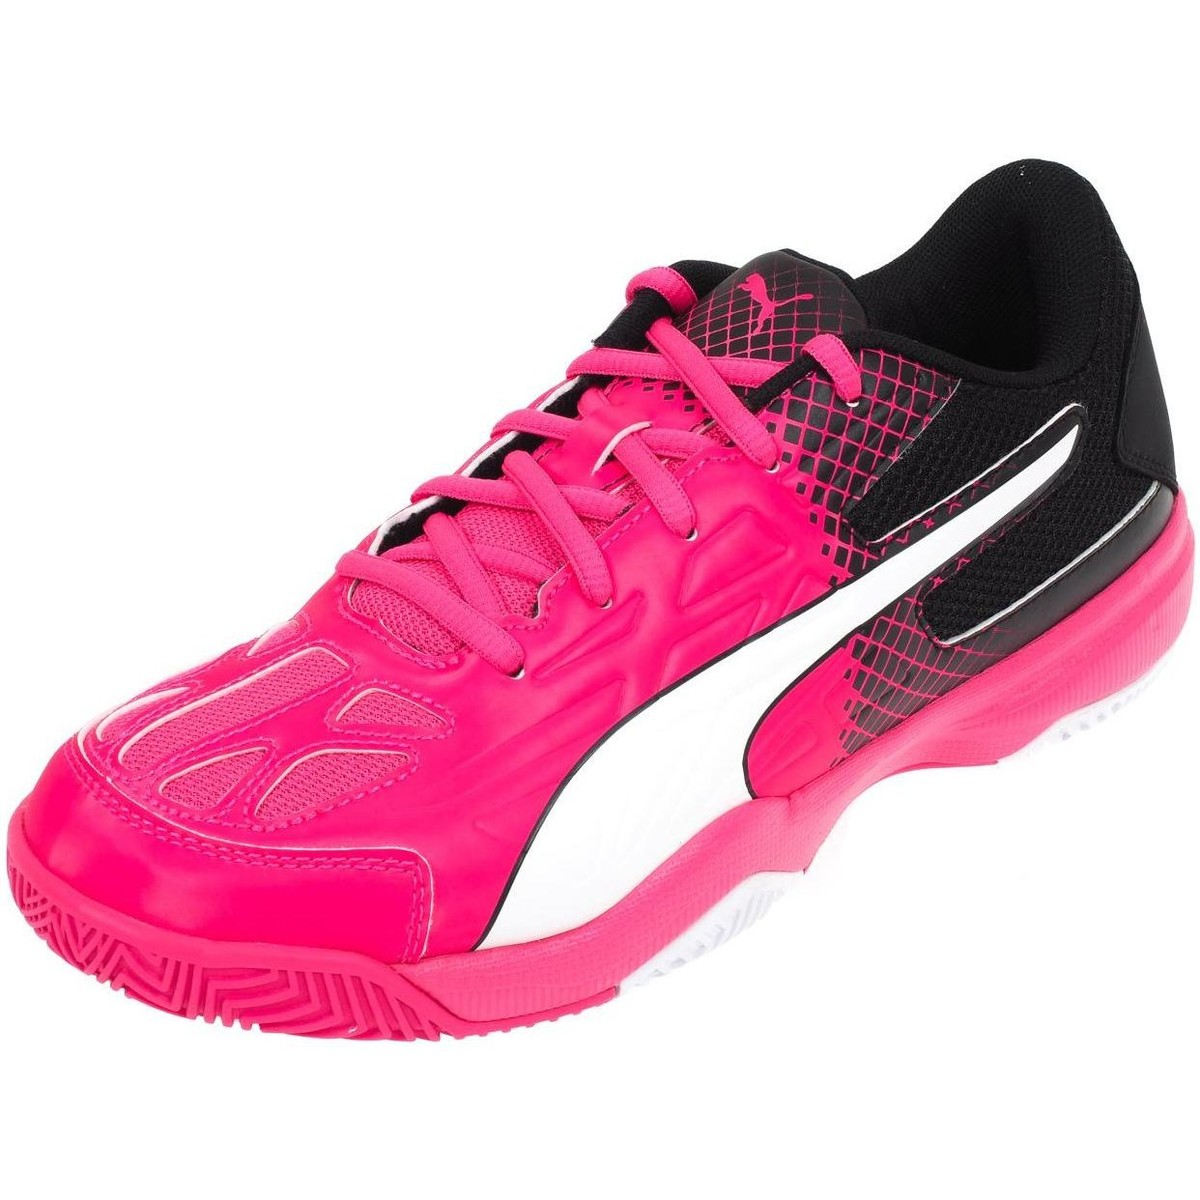 Chaussures-de-sport Puma Evospeed indoor 5.5 l Fuschia